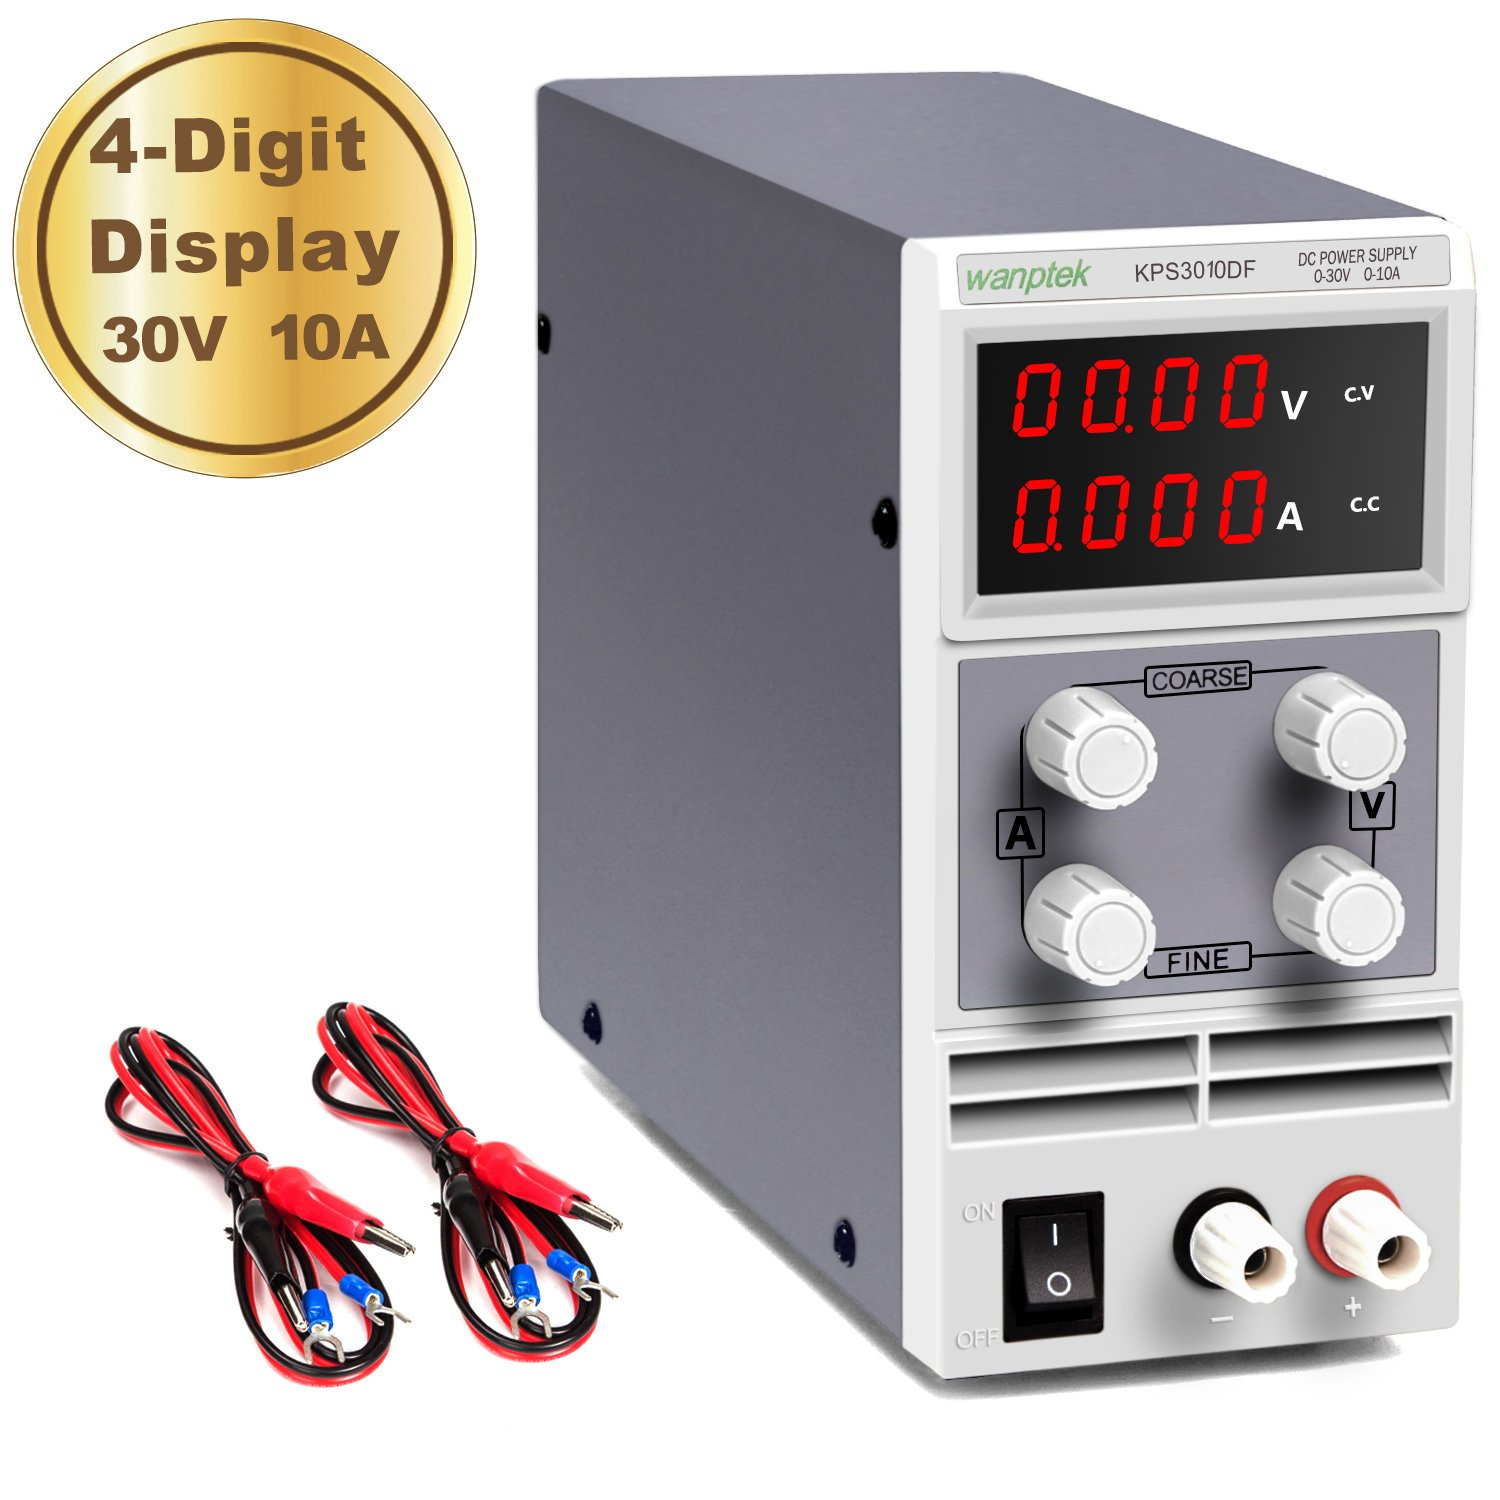 DC Power Supply Variable 30V 10A 4-Digit LED Display [Upgraded Version] Precision Adjustable DC Bench Power Supply DC Regulated Power Supply with 2 Alligator Clip Leads